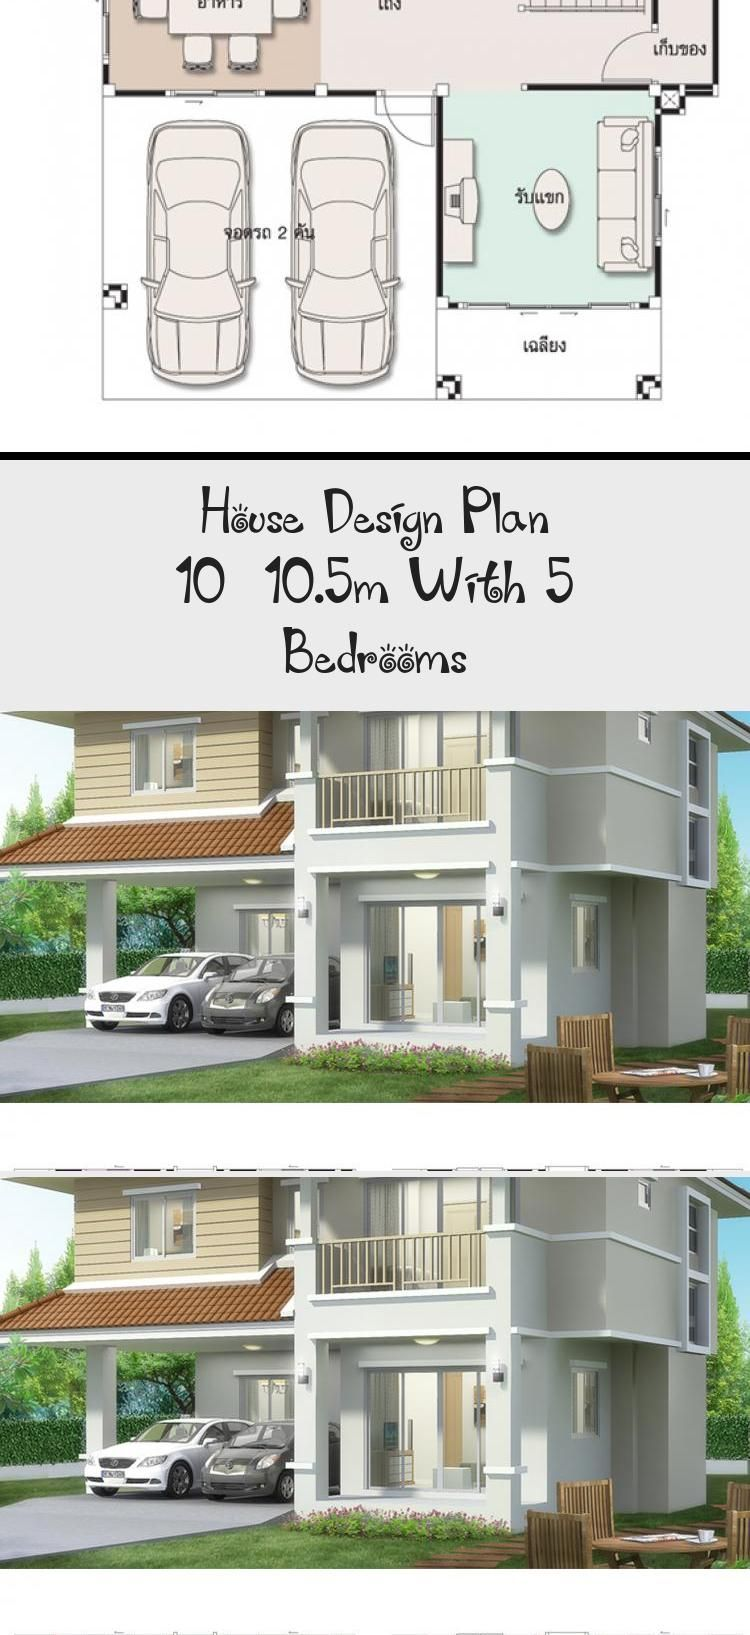 House Design Plan 10x10 5m With 5 Bedrooms Home Design With Plansearch Smallhouseplanssims4 Smallhouse In 2020 Home Design Plans House Design Courtyard House Plans